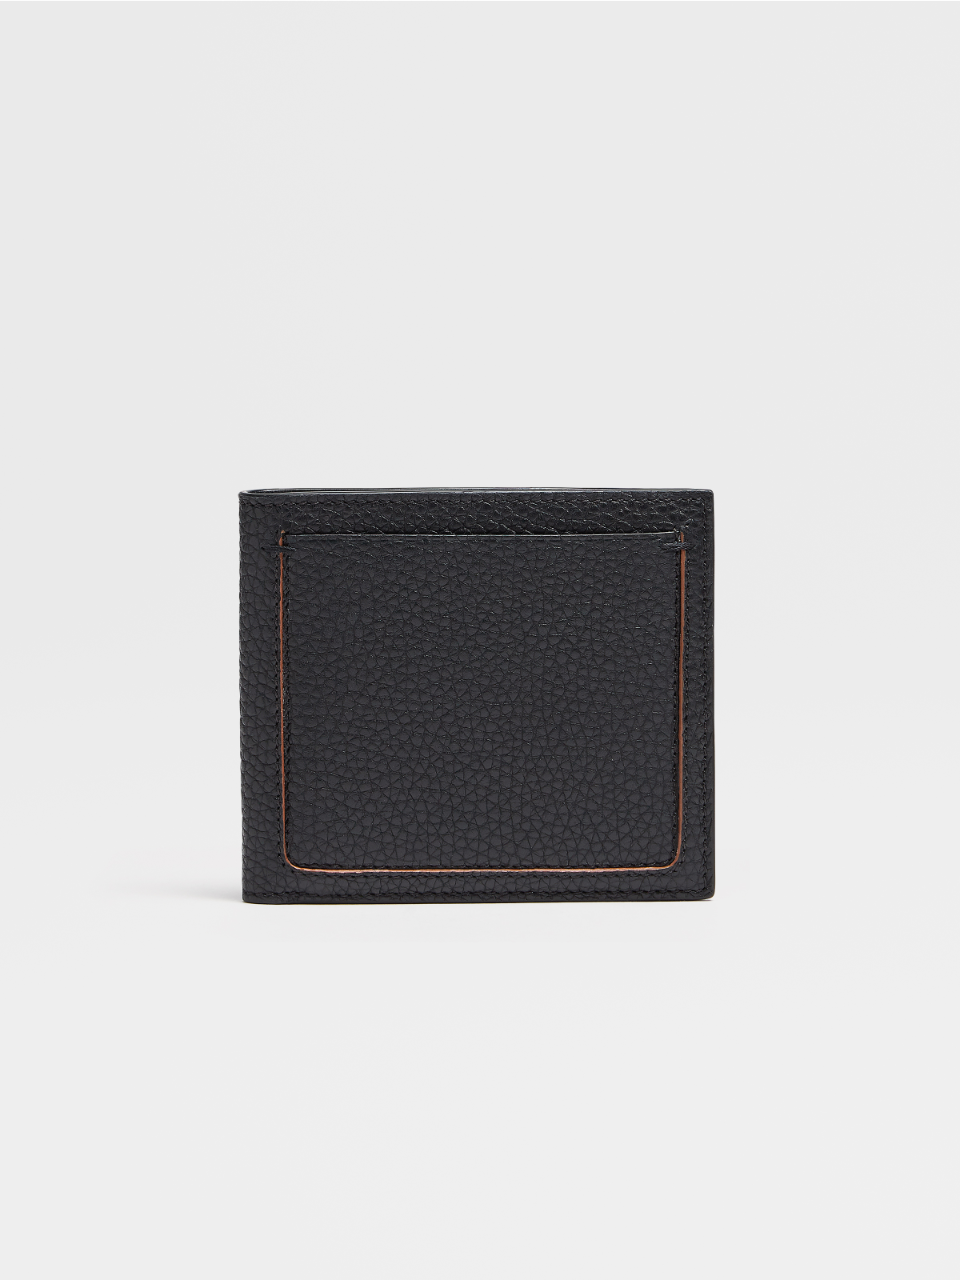 Grained Calfskin Blazer 8cc Billfold Wallet